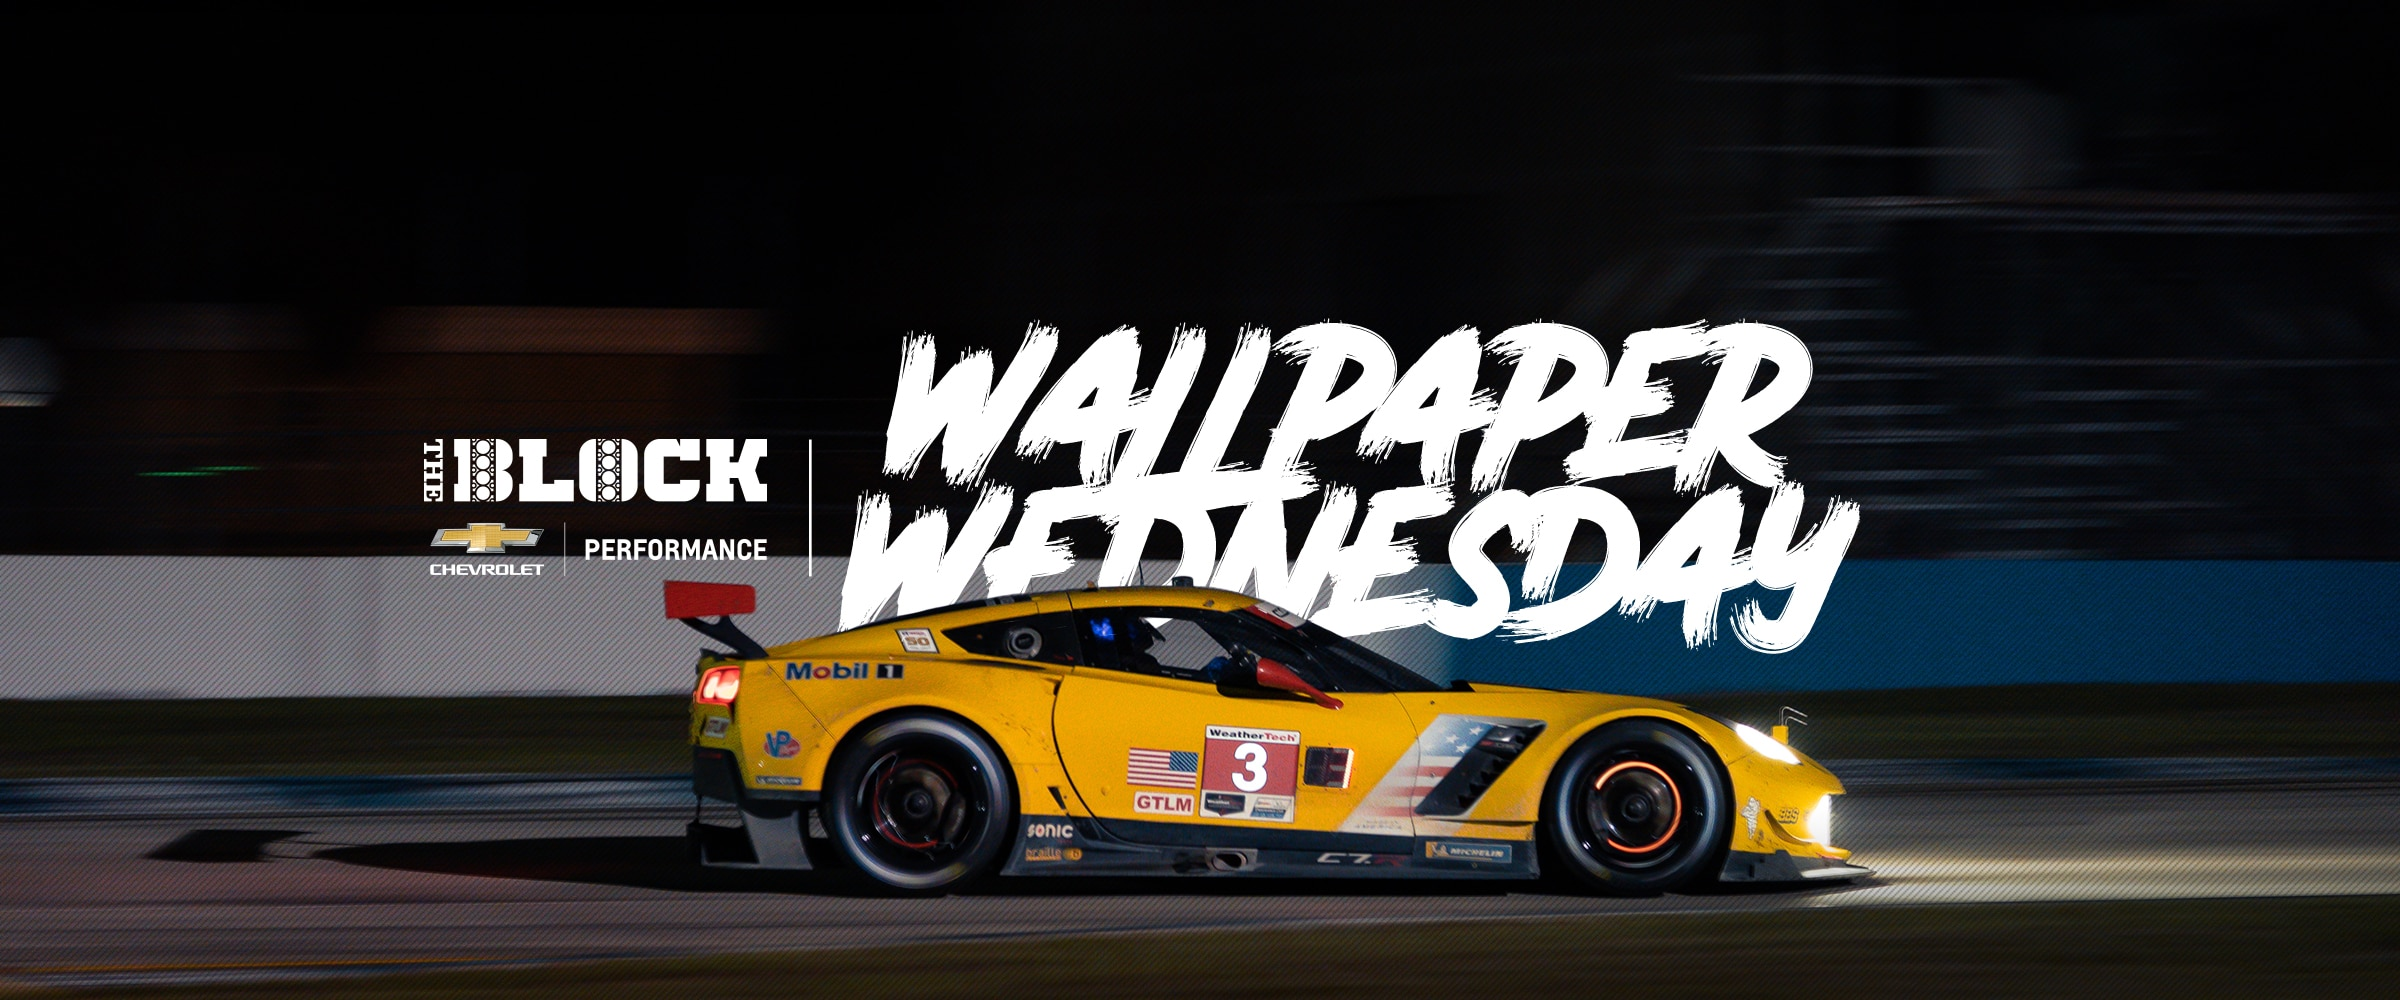 Article tags: Racing, Chevy, Chevrolet, Chevrolet Performance, Corvette, Corvette C7.R, Corvette Racing, Sebring, Mobil 1 Twelve Hours of Sebring, Super Sebring, Wallpaper, Wallpaper Wednesday, Downloads